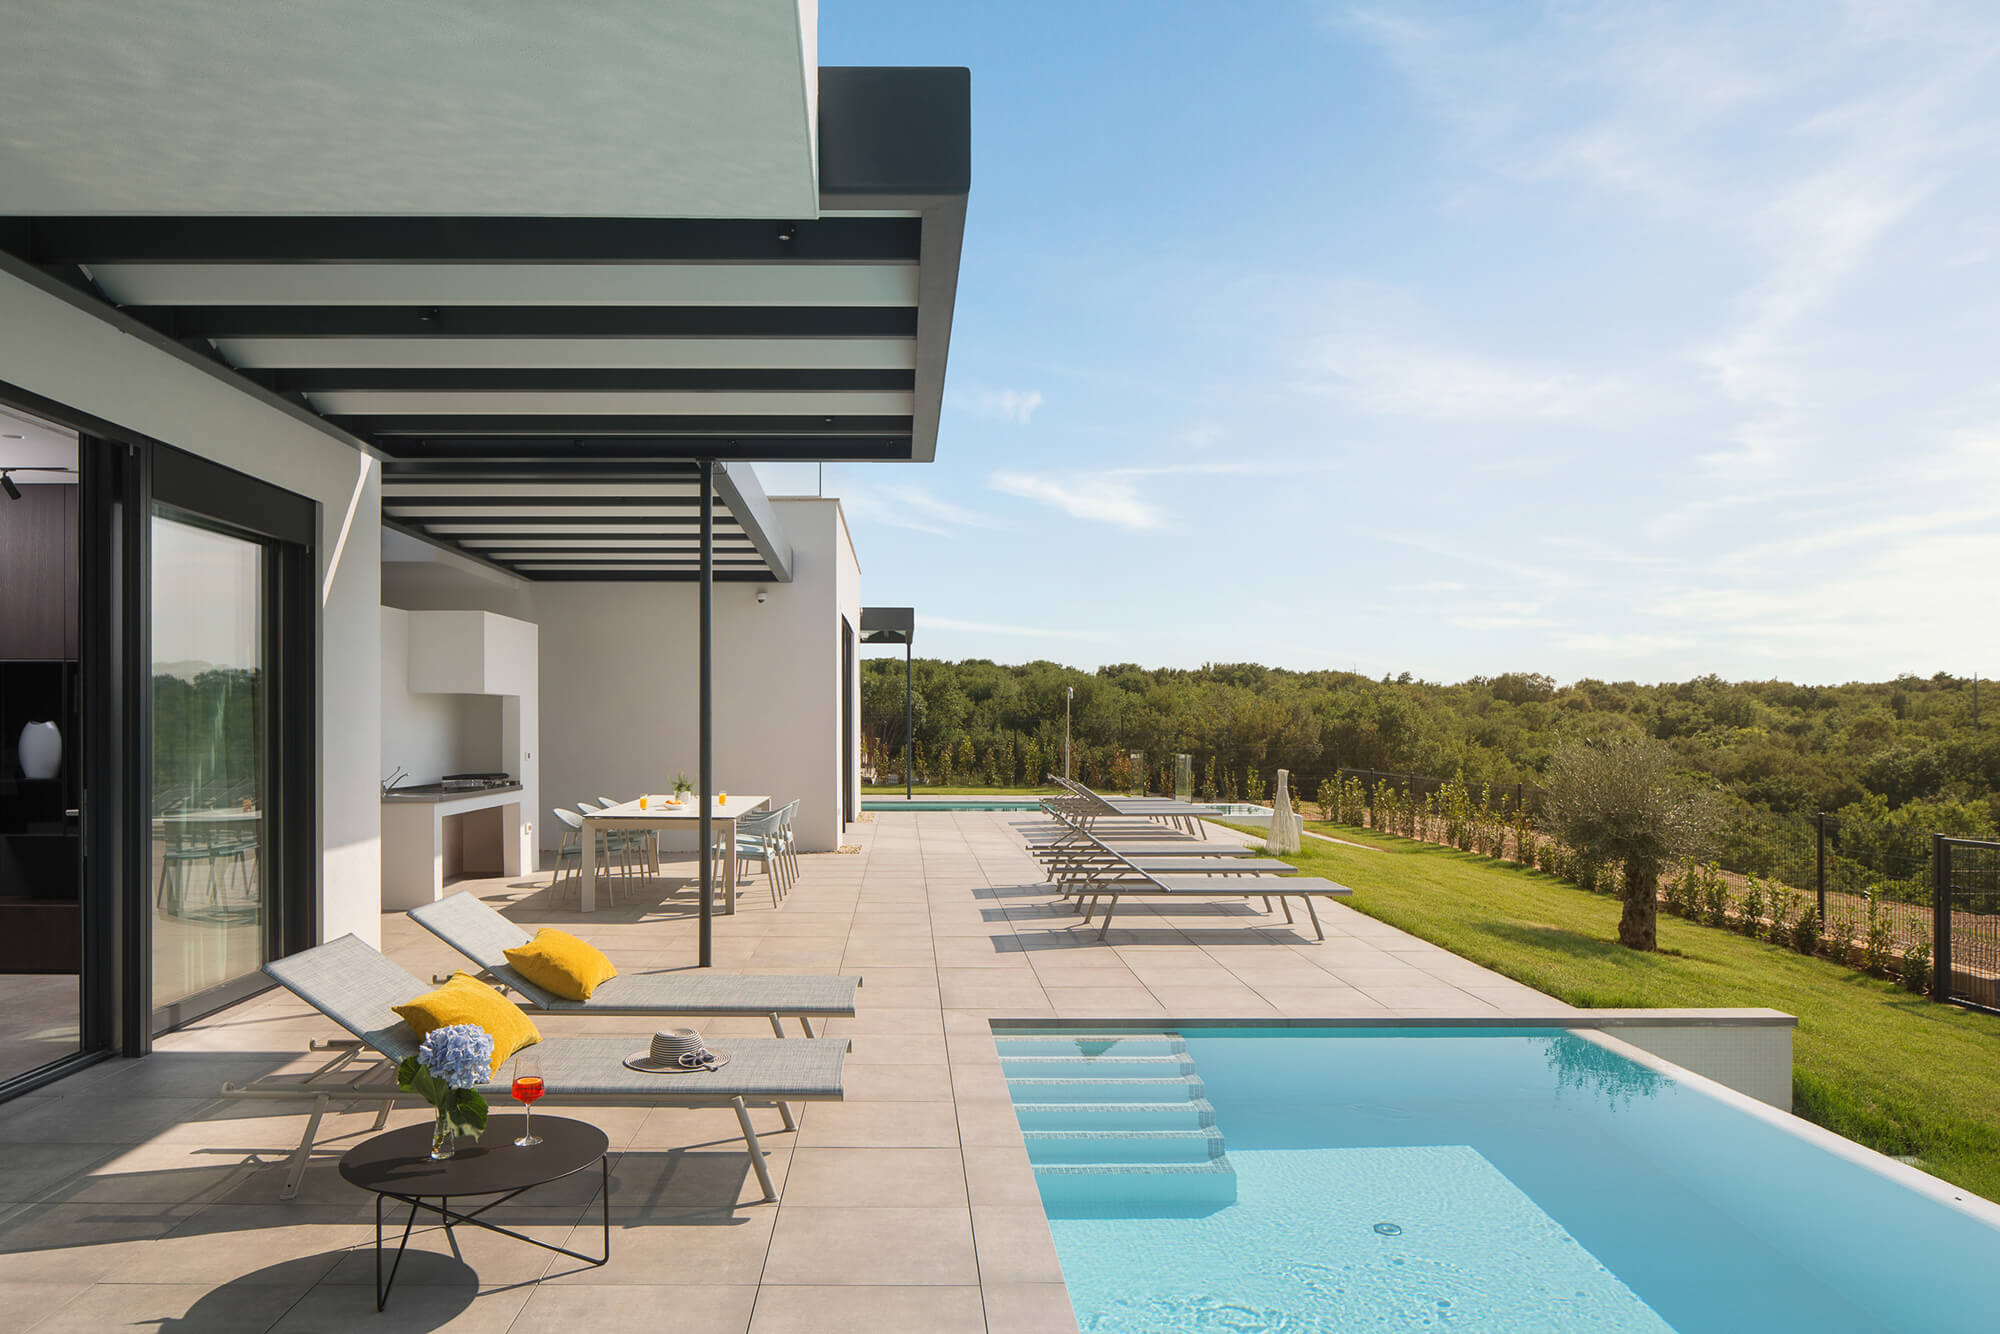 Villa with indoor and outdoor swimming pool